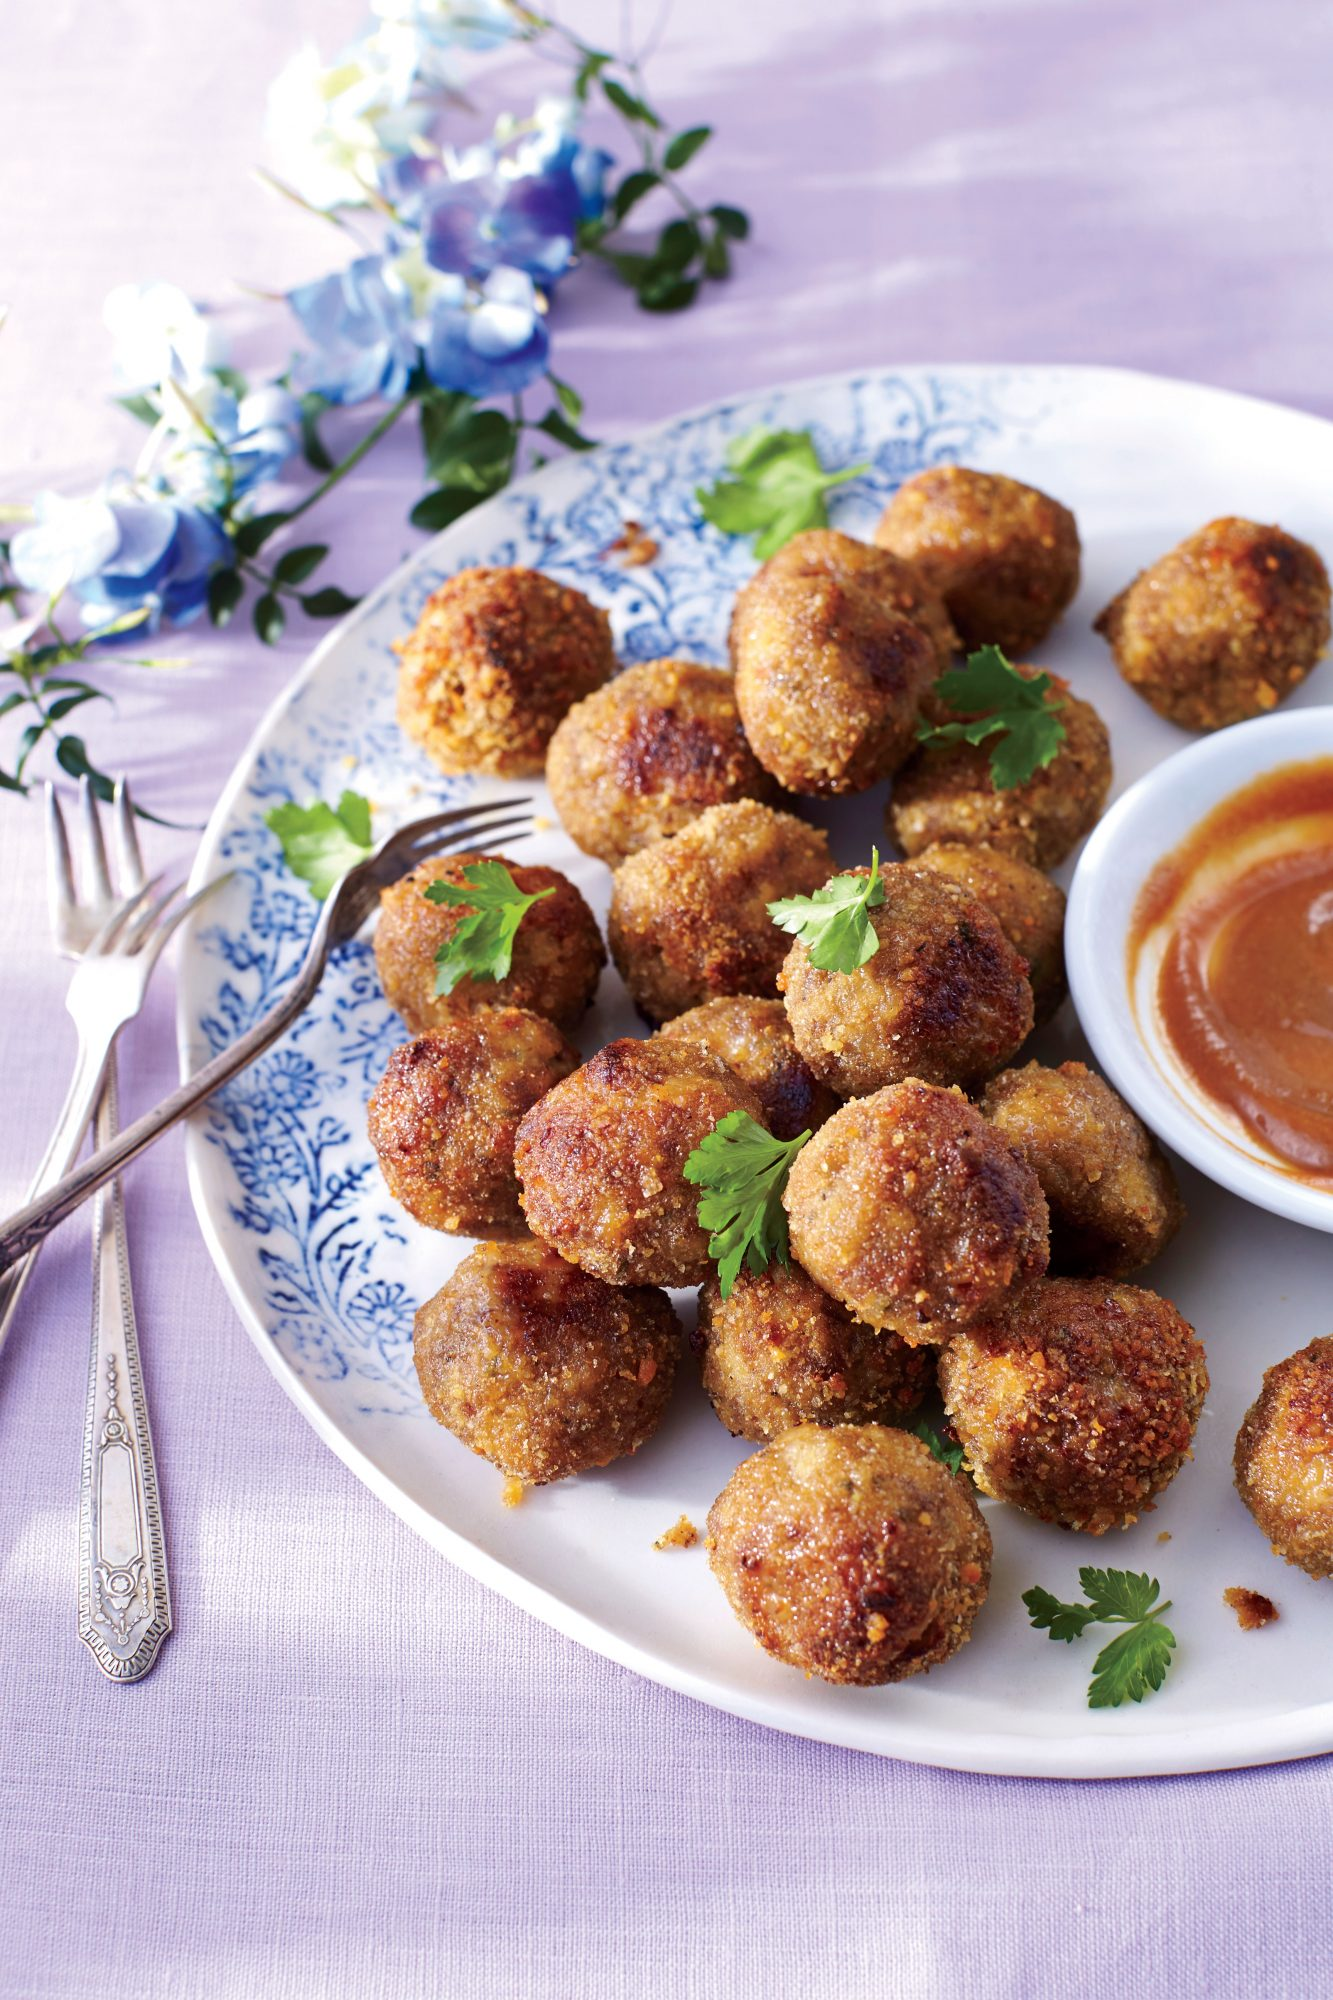 Breakfast Sausage Meatballs with Apple Butter Dipping Sauce